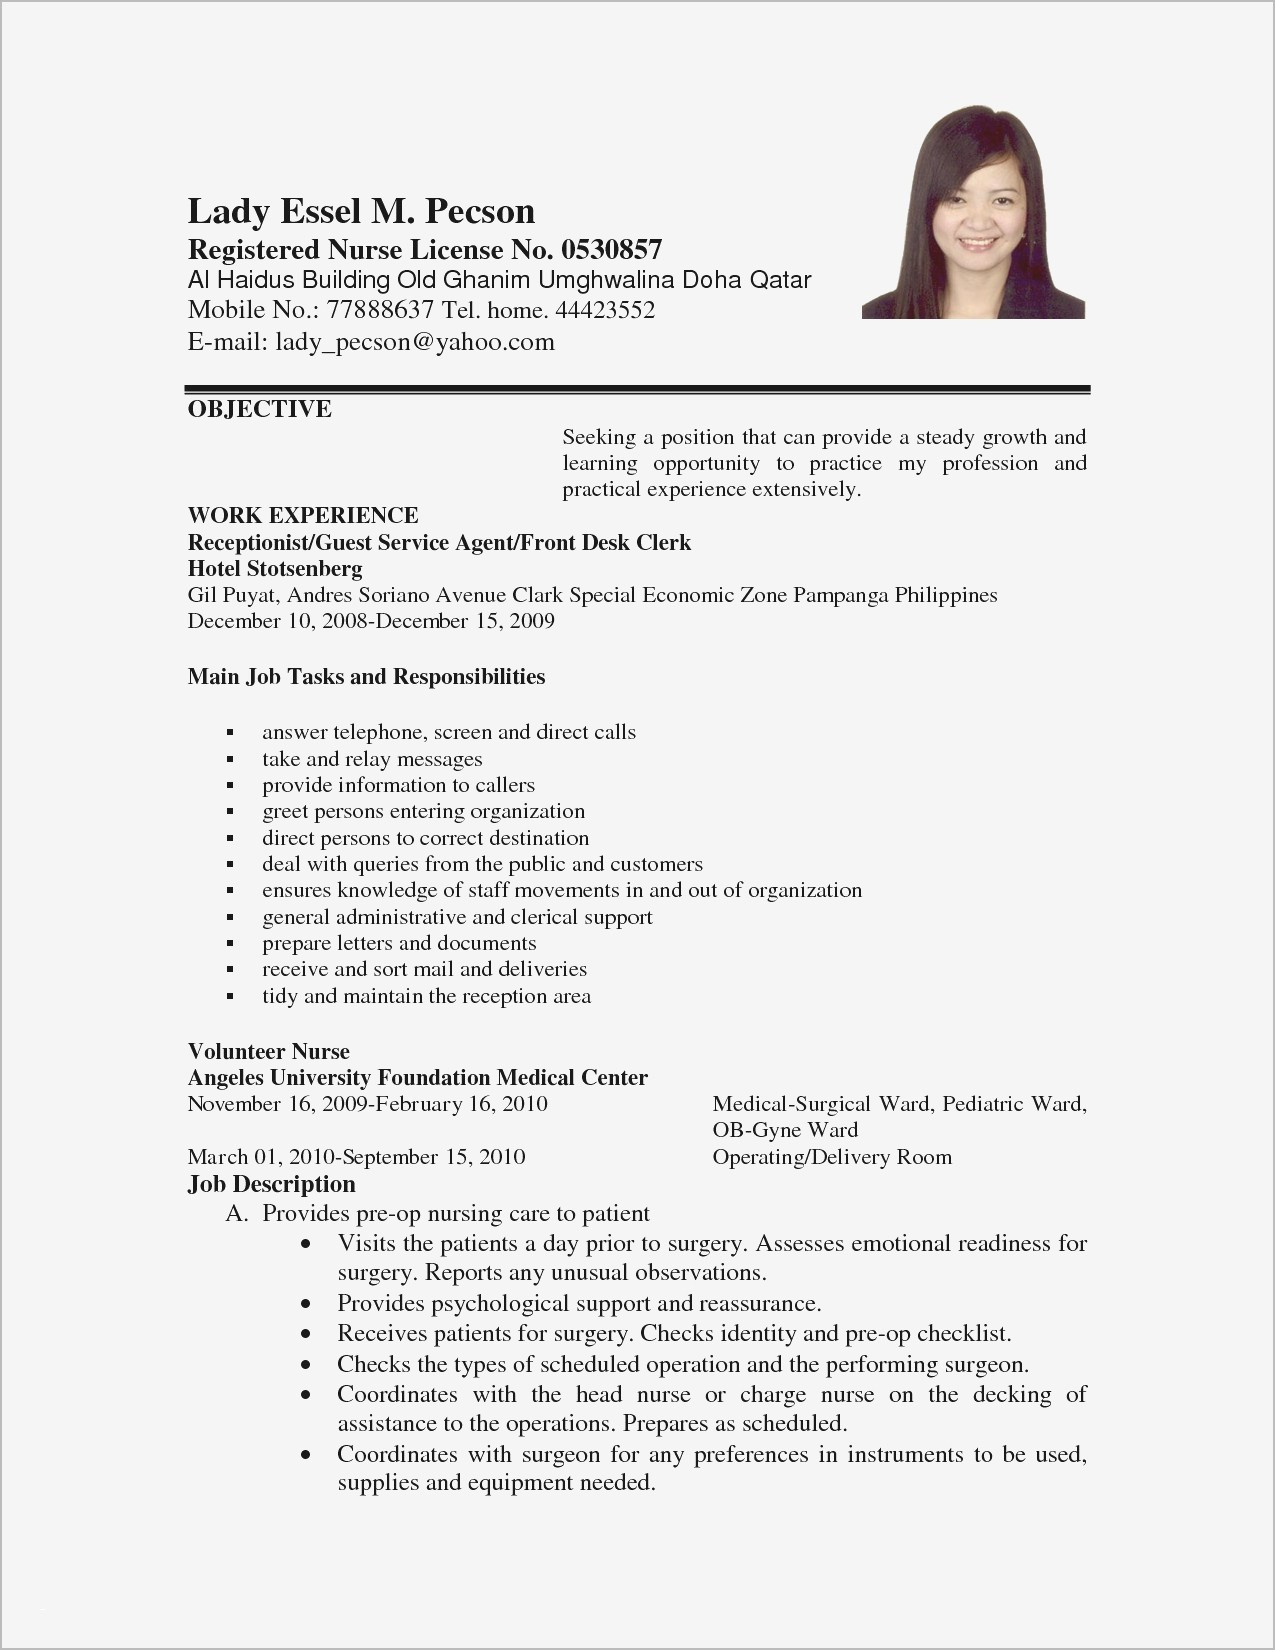 Receptionist Description for Resume - Puter Skills Resume Lovely Awesome Research Skills Resume New